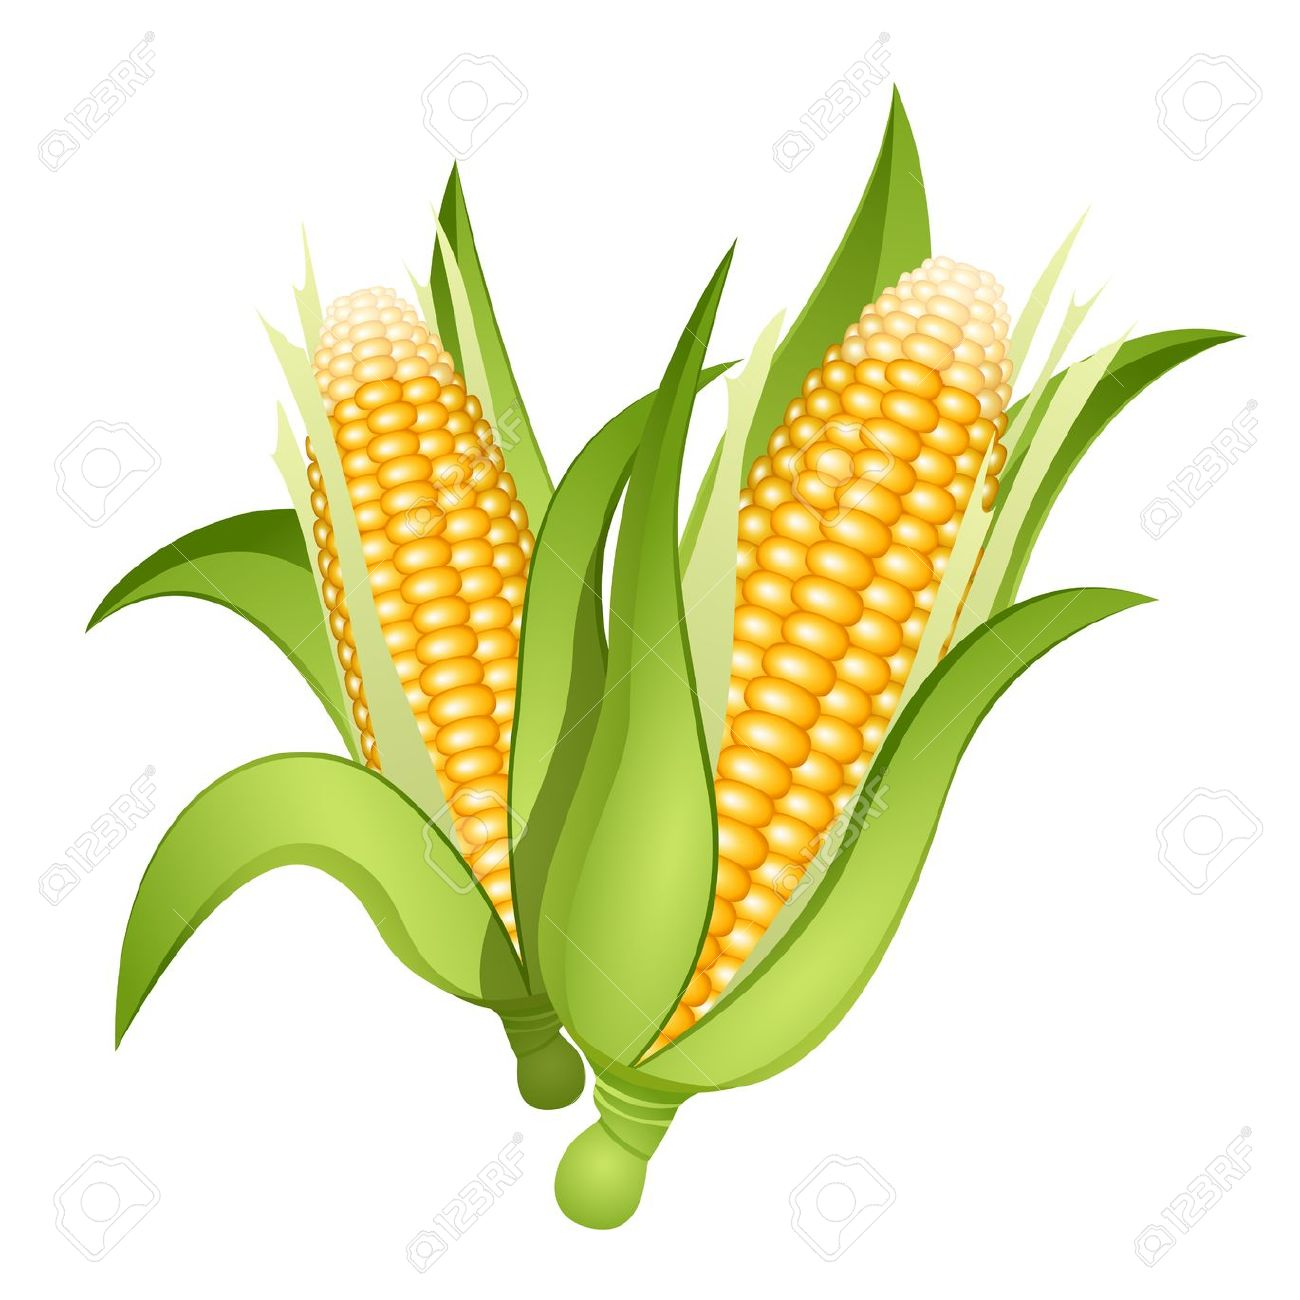 Two Ears Of Corn Isolated Royalty Free Cliparts, Vectors, And.